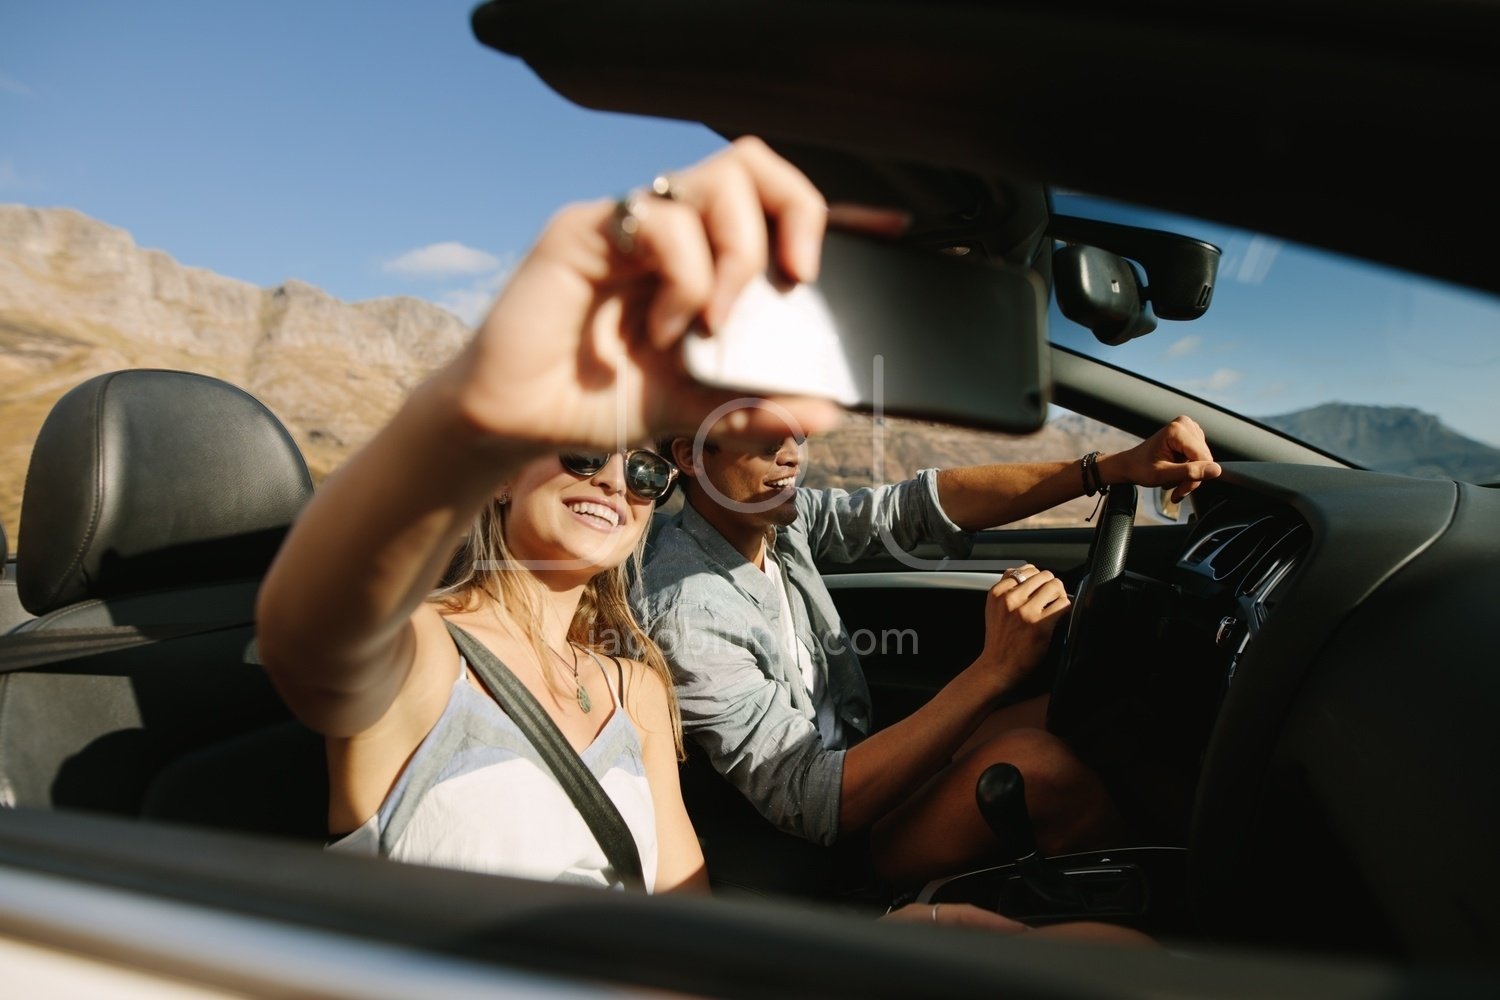 Couple On Road Trip In Convertible Car Taking Selfie Jacob Lund Photography Store Premium Stock Photo